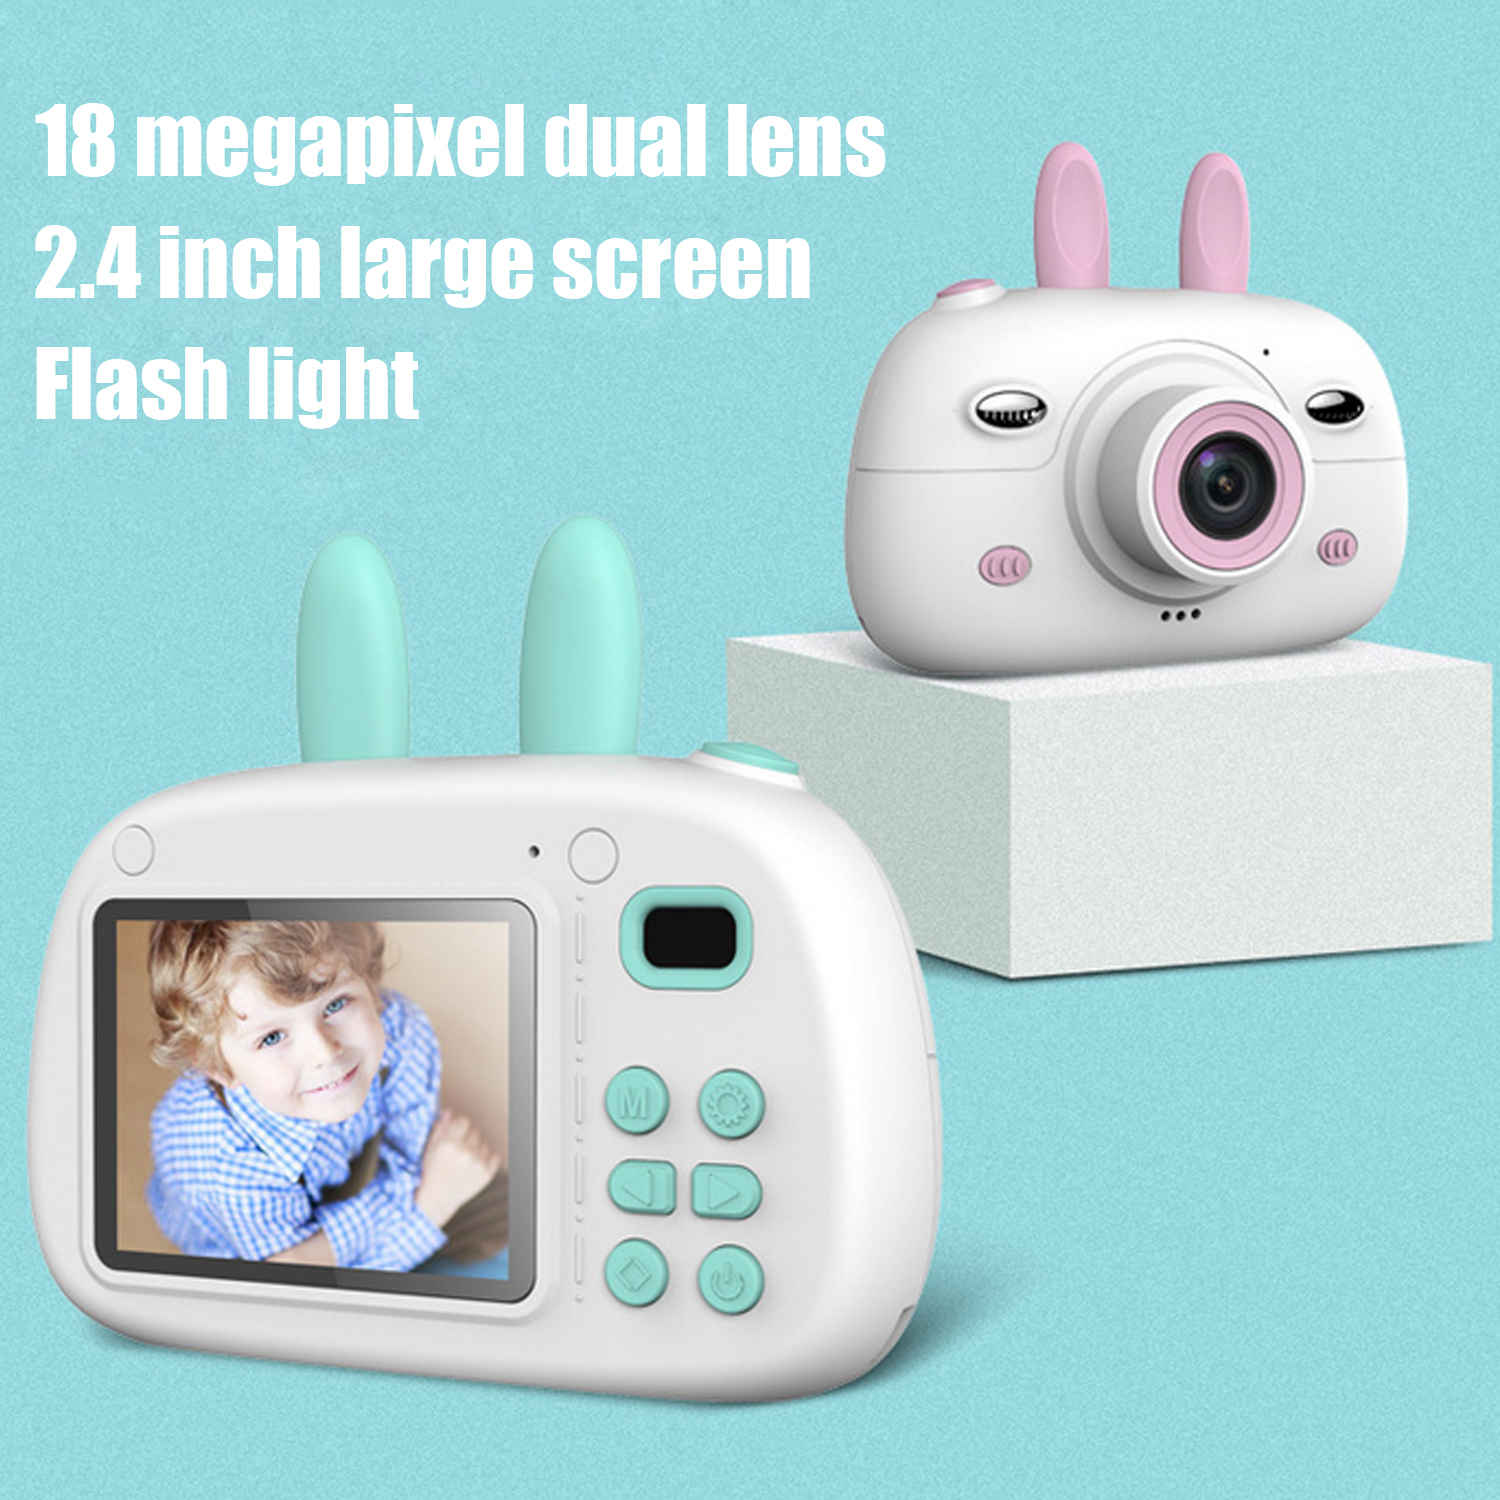 Cute Cartoon Rabbit 1800W HD Digital Camera Camcorder Photo Video Game Toy With 16G Memory Card For Kids Children Gift